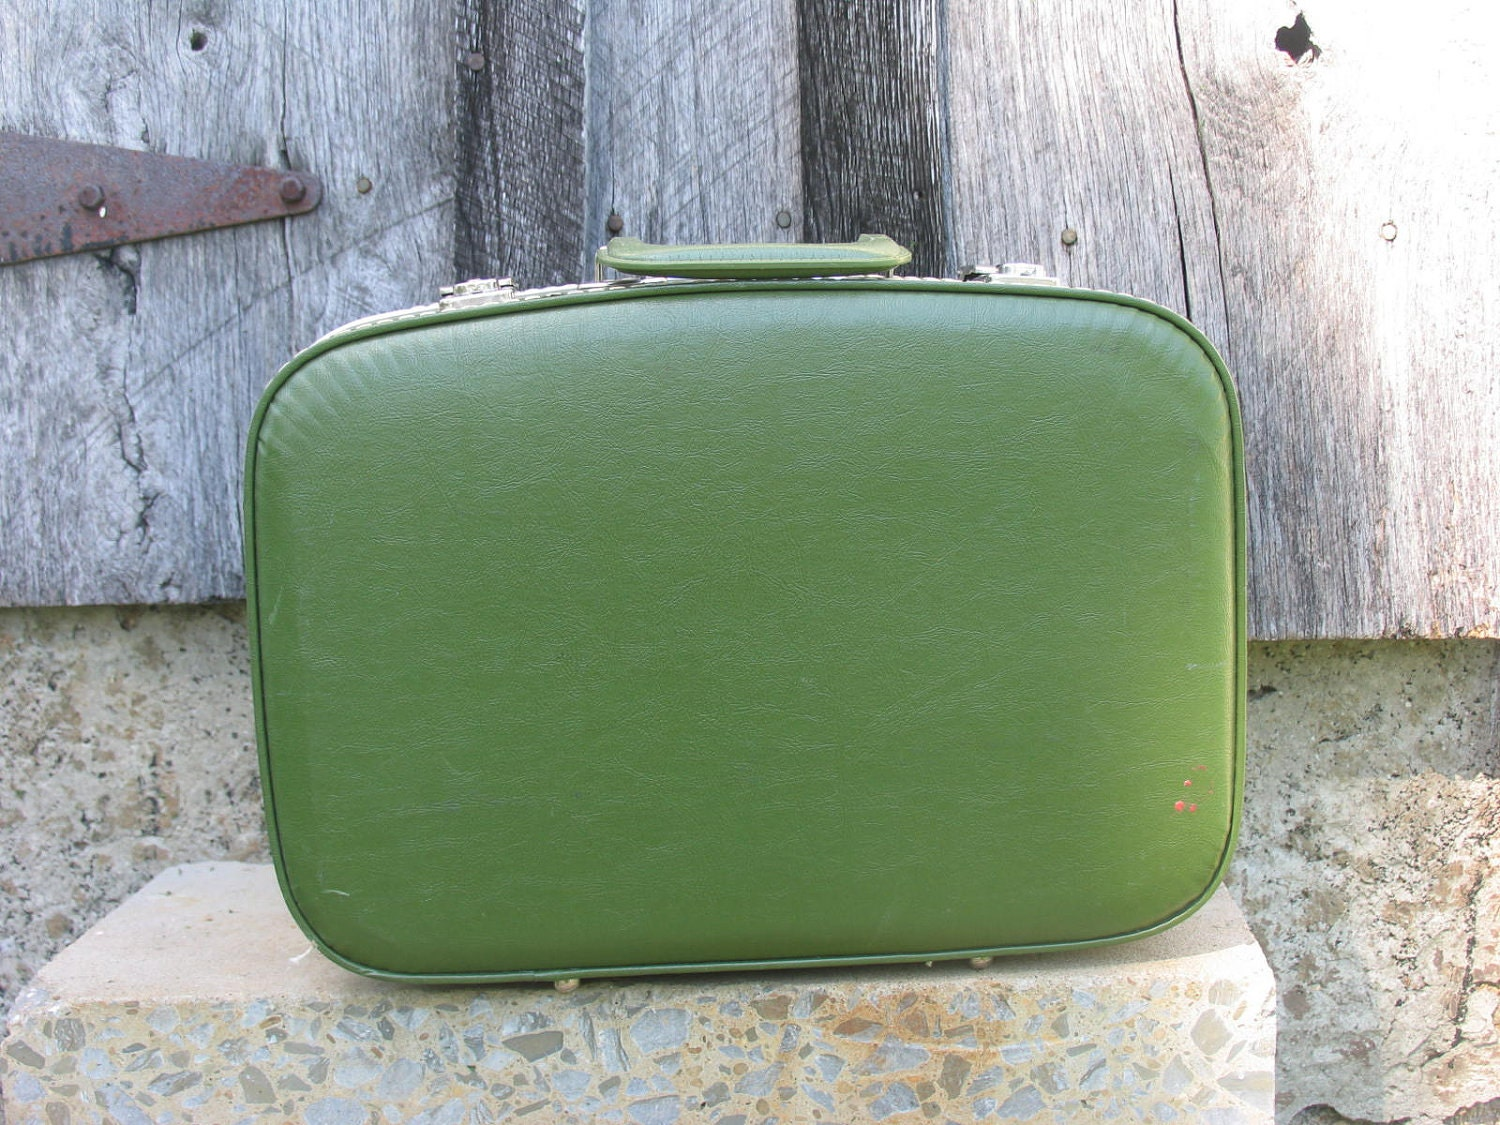 Vintage Suitcase Small Hardsided Luggage Green Suitcase